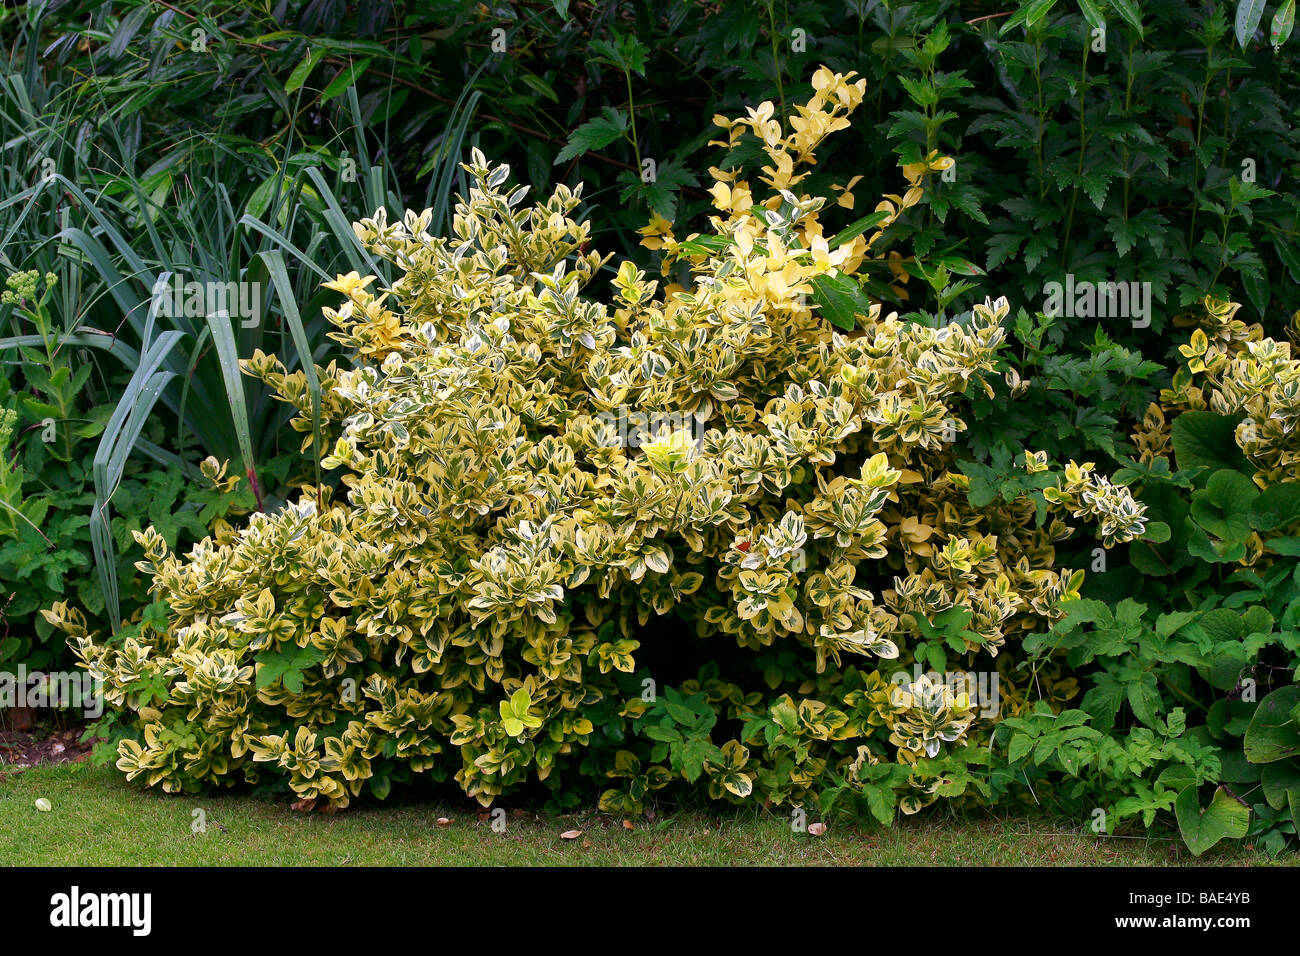 Euonymus fortunei Emerald 'n Gold - Stock Image